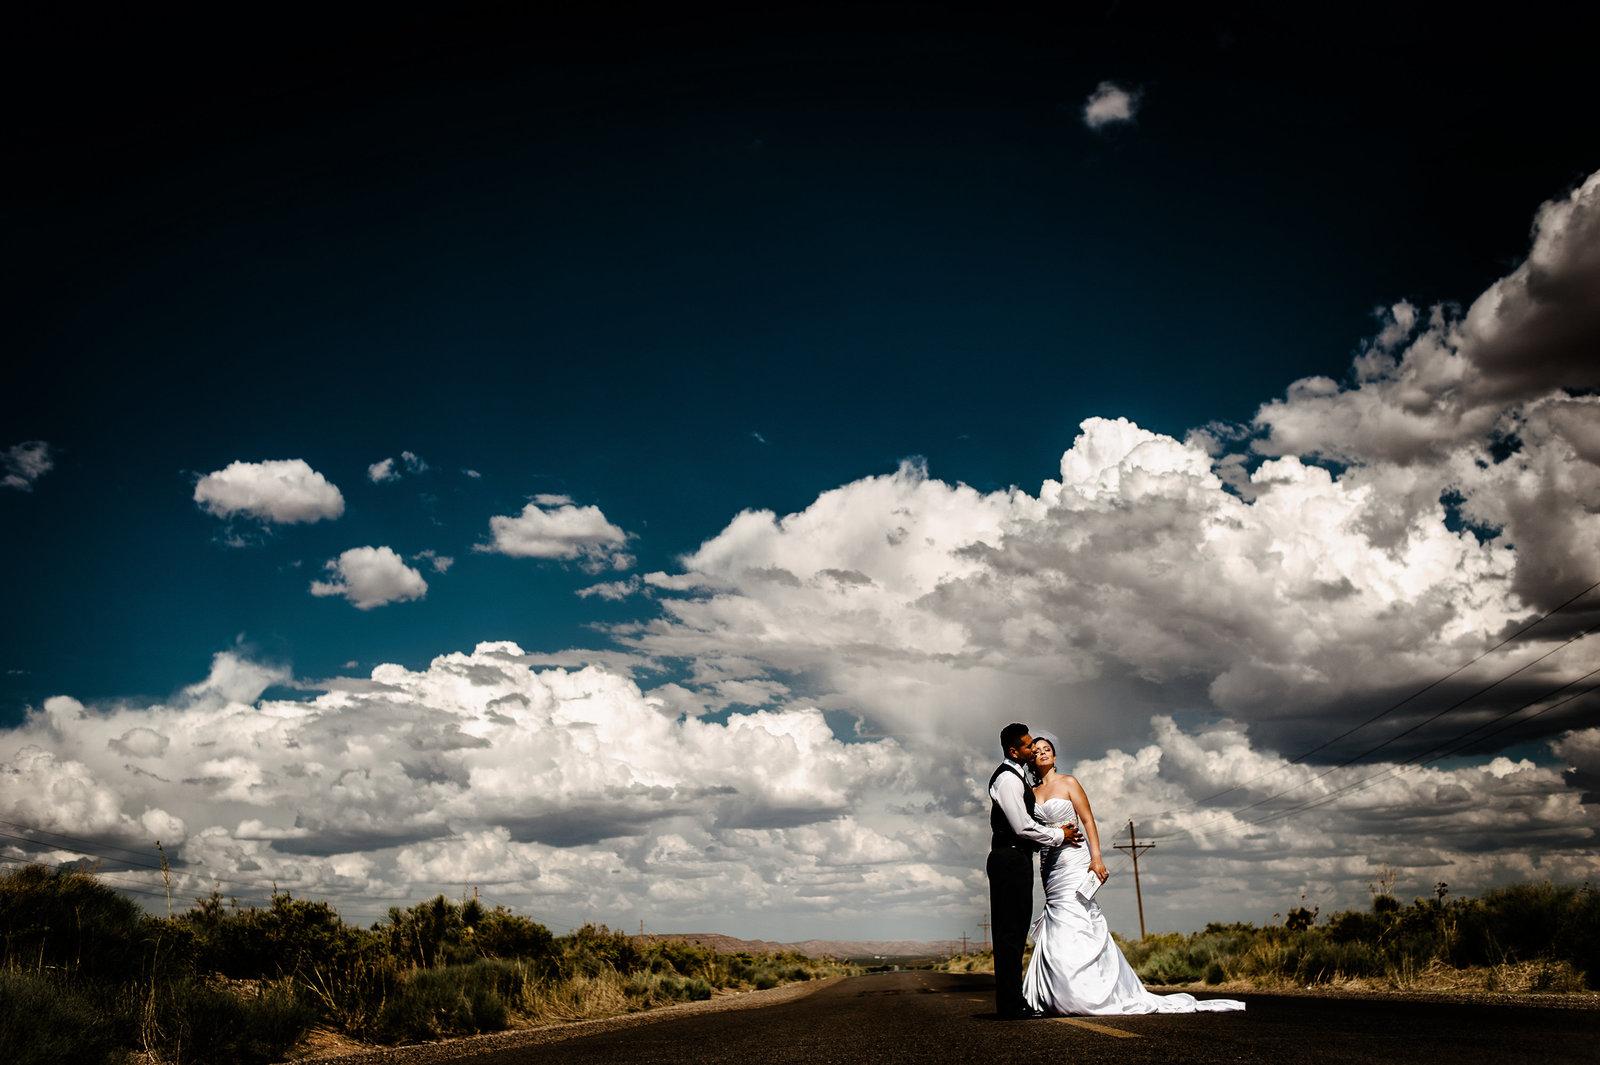 259-El-paso-wedding-photographer-116LaJu_0116